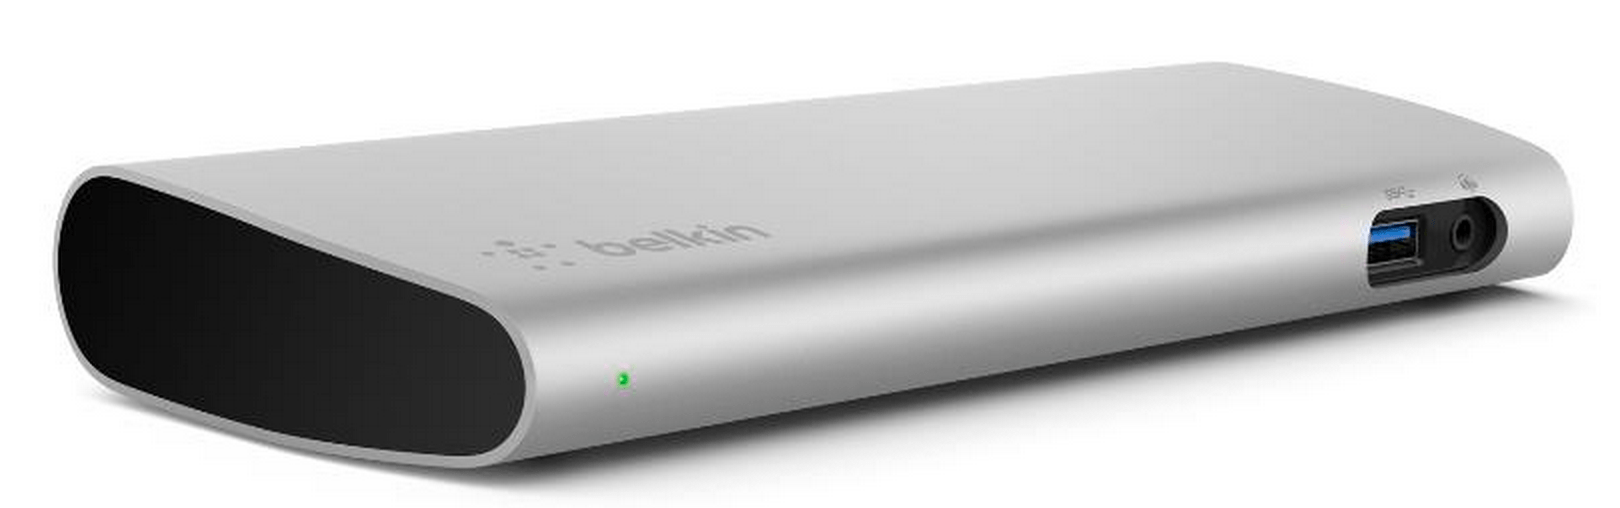 belkin thunderbolt 2 express dock manual